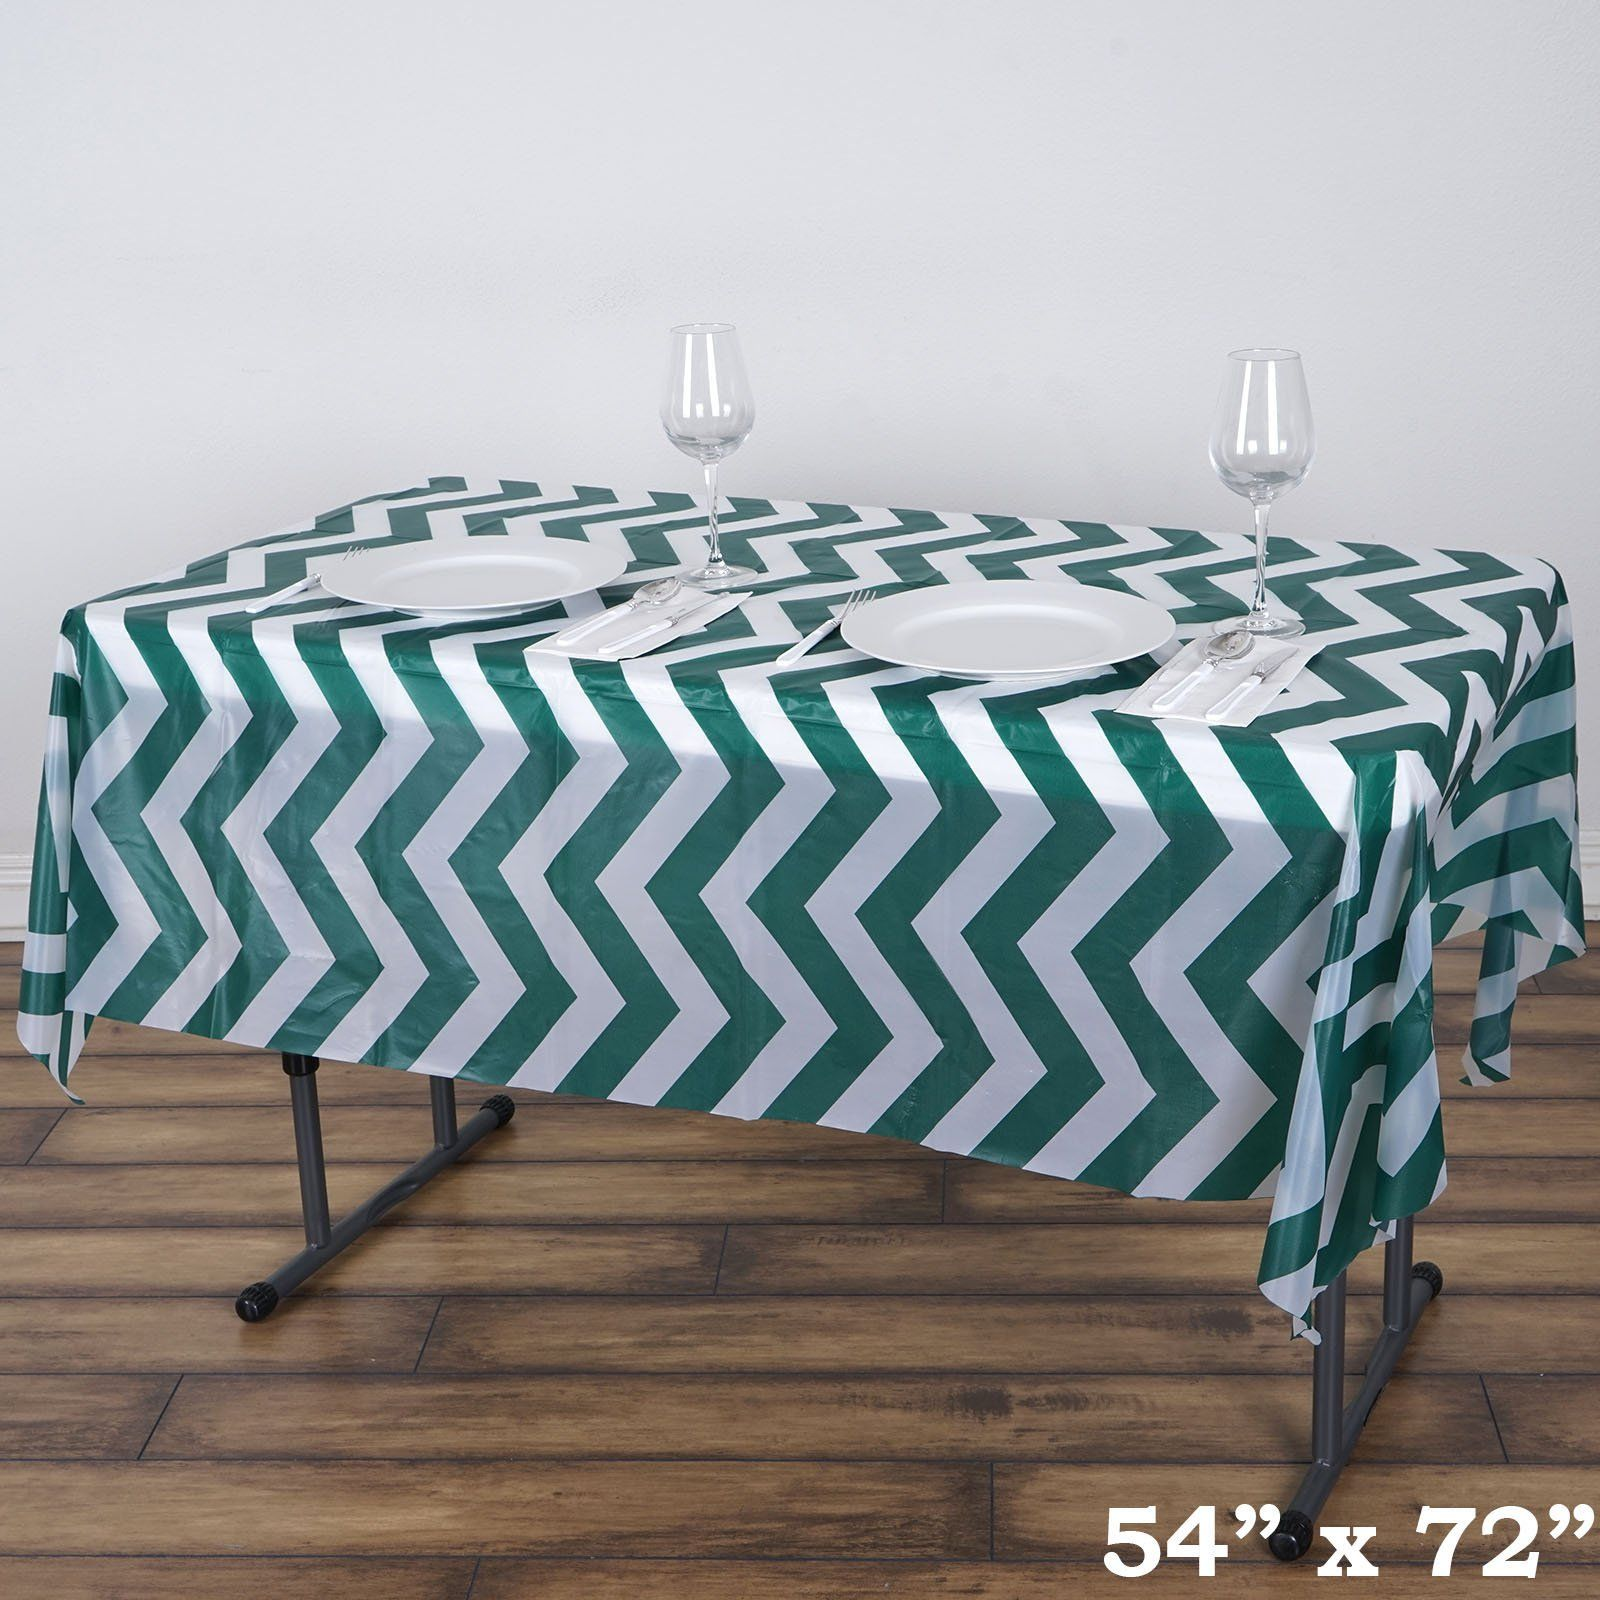 54 X 72 Hunter Emerald Green 10 Mil Thick Chevron Waterproof Tablecloth Pvc Rectangle Disposable Tablecloth Plastic Table Covers Vinyl Tablecloth Waterproof Tablecloth